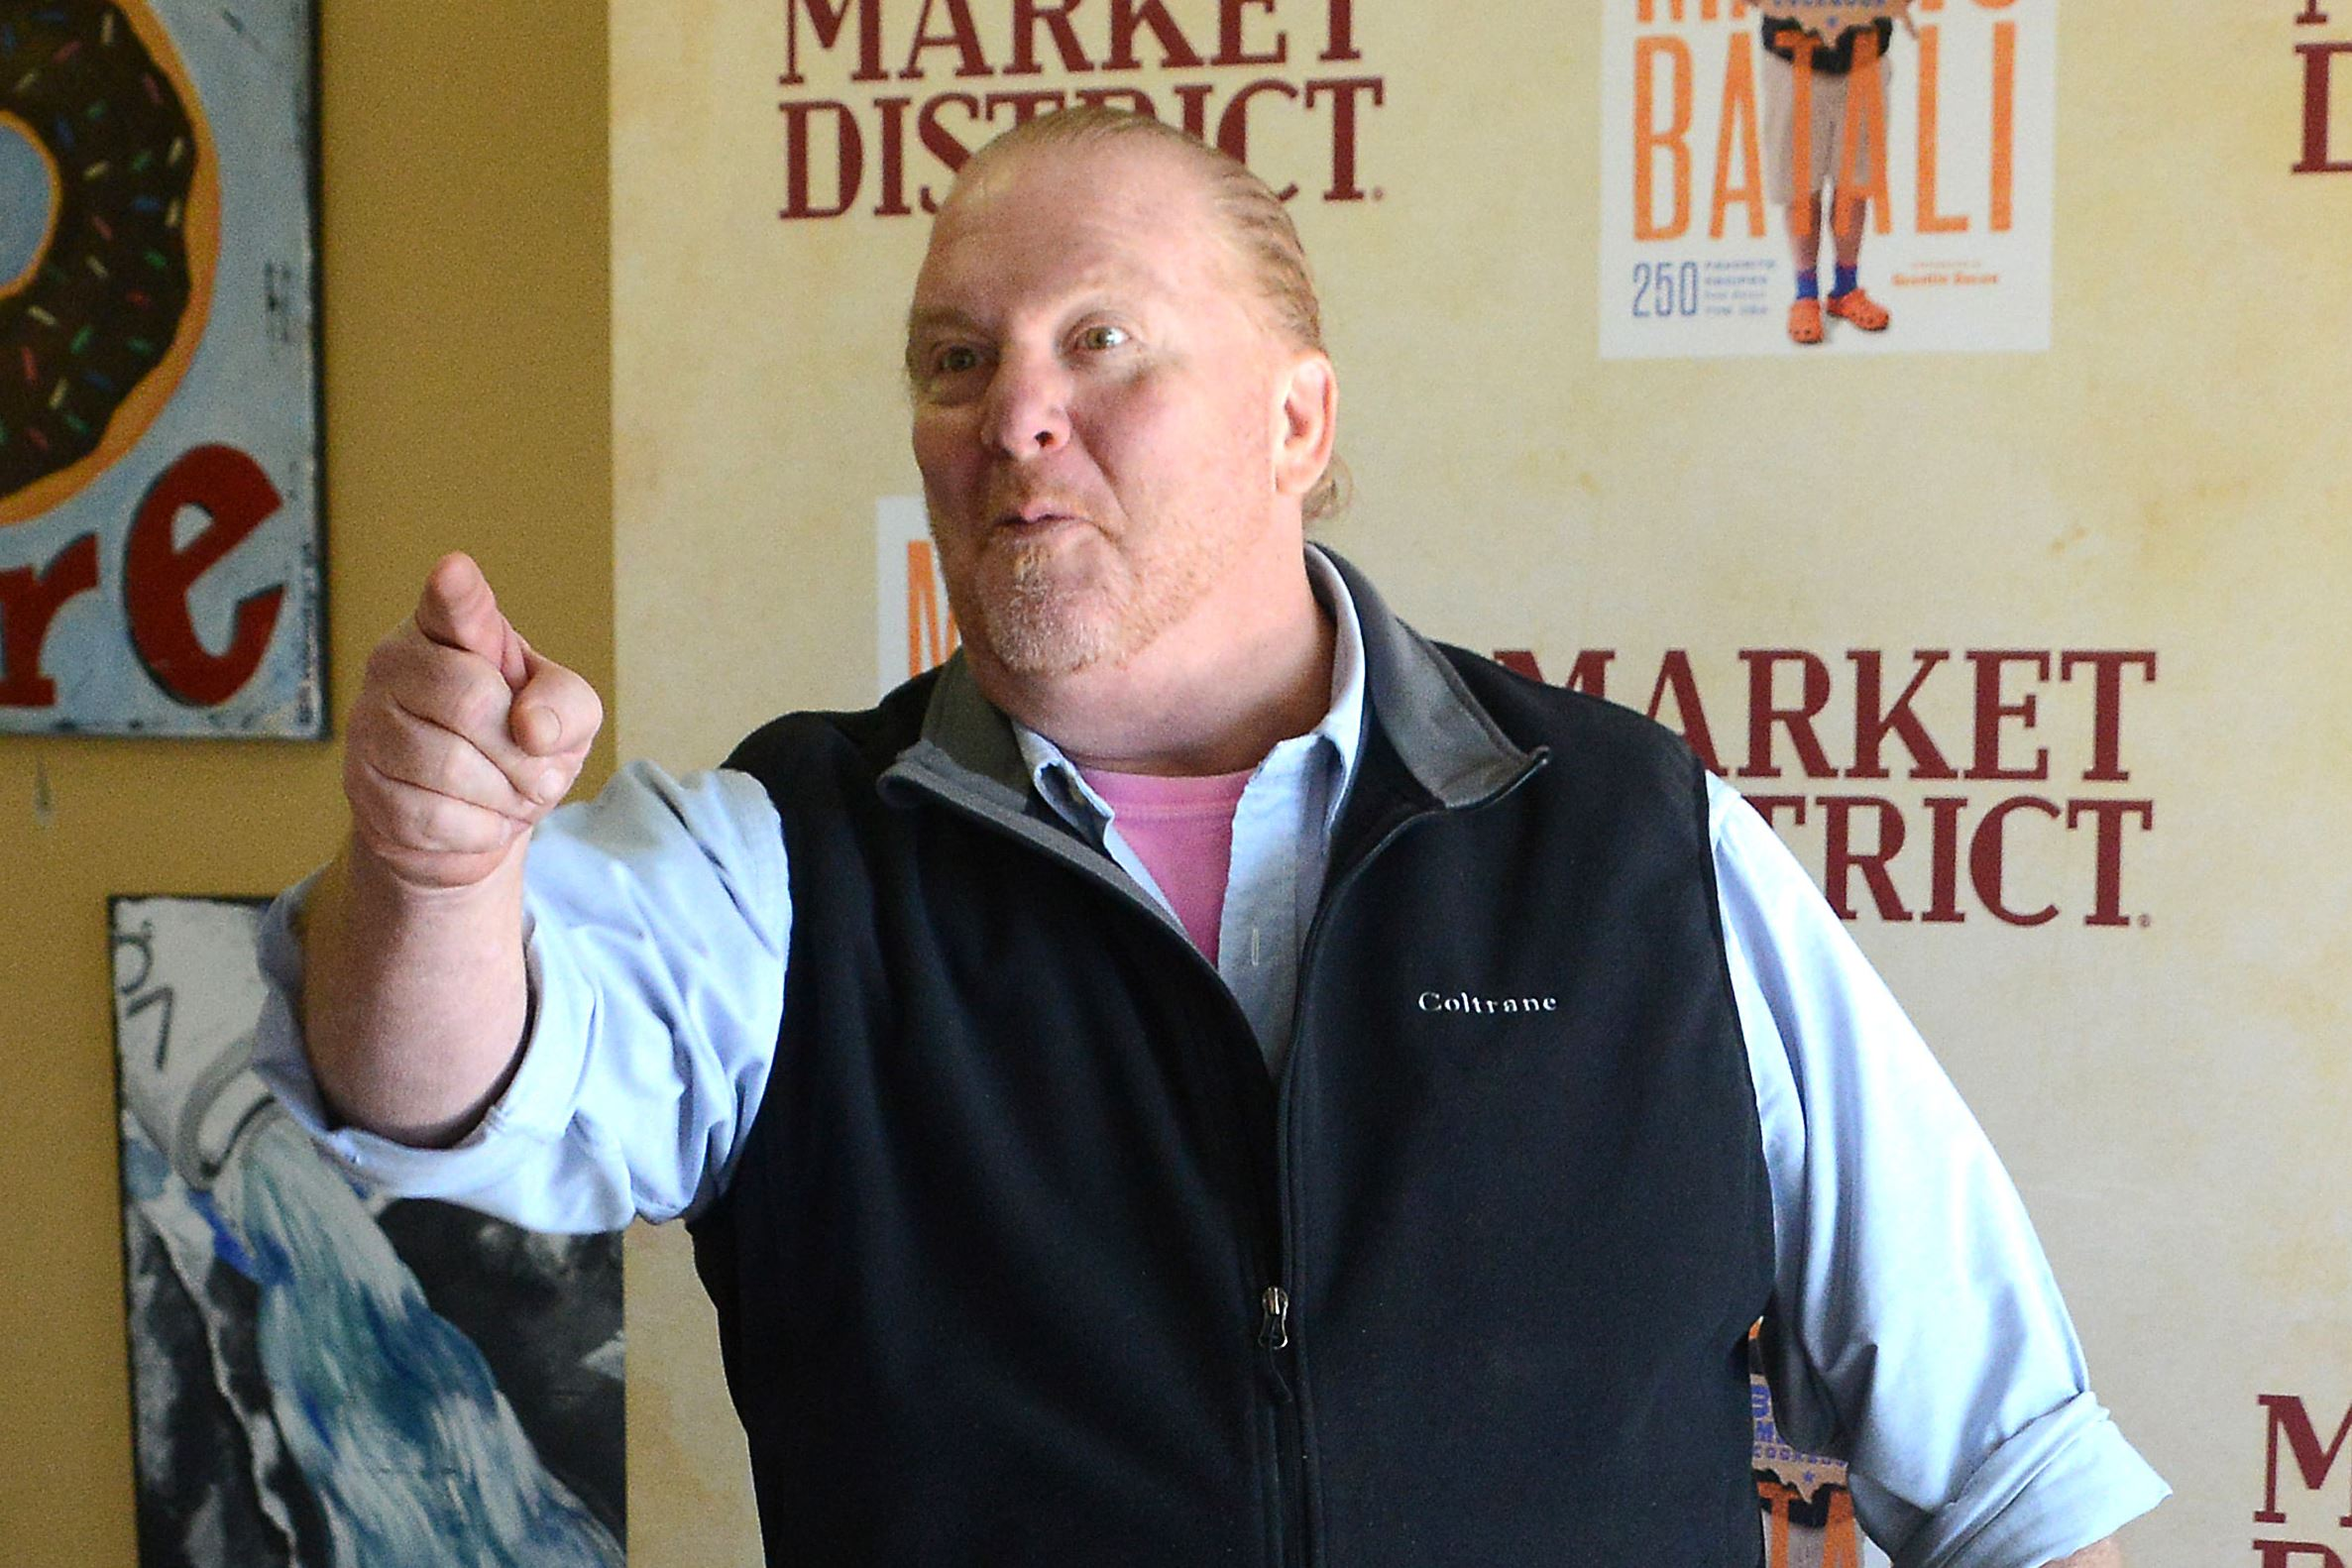 20170408lf-Chef05-1 Mario Batali arrived at the Giant Eagle Market District in Robinson in his signature outfit: a black vest over a shirt with rolled-up sleeves, Bermuda shorts, blue socks and orange Crocs.